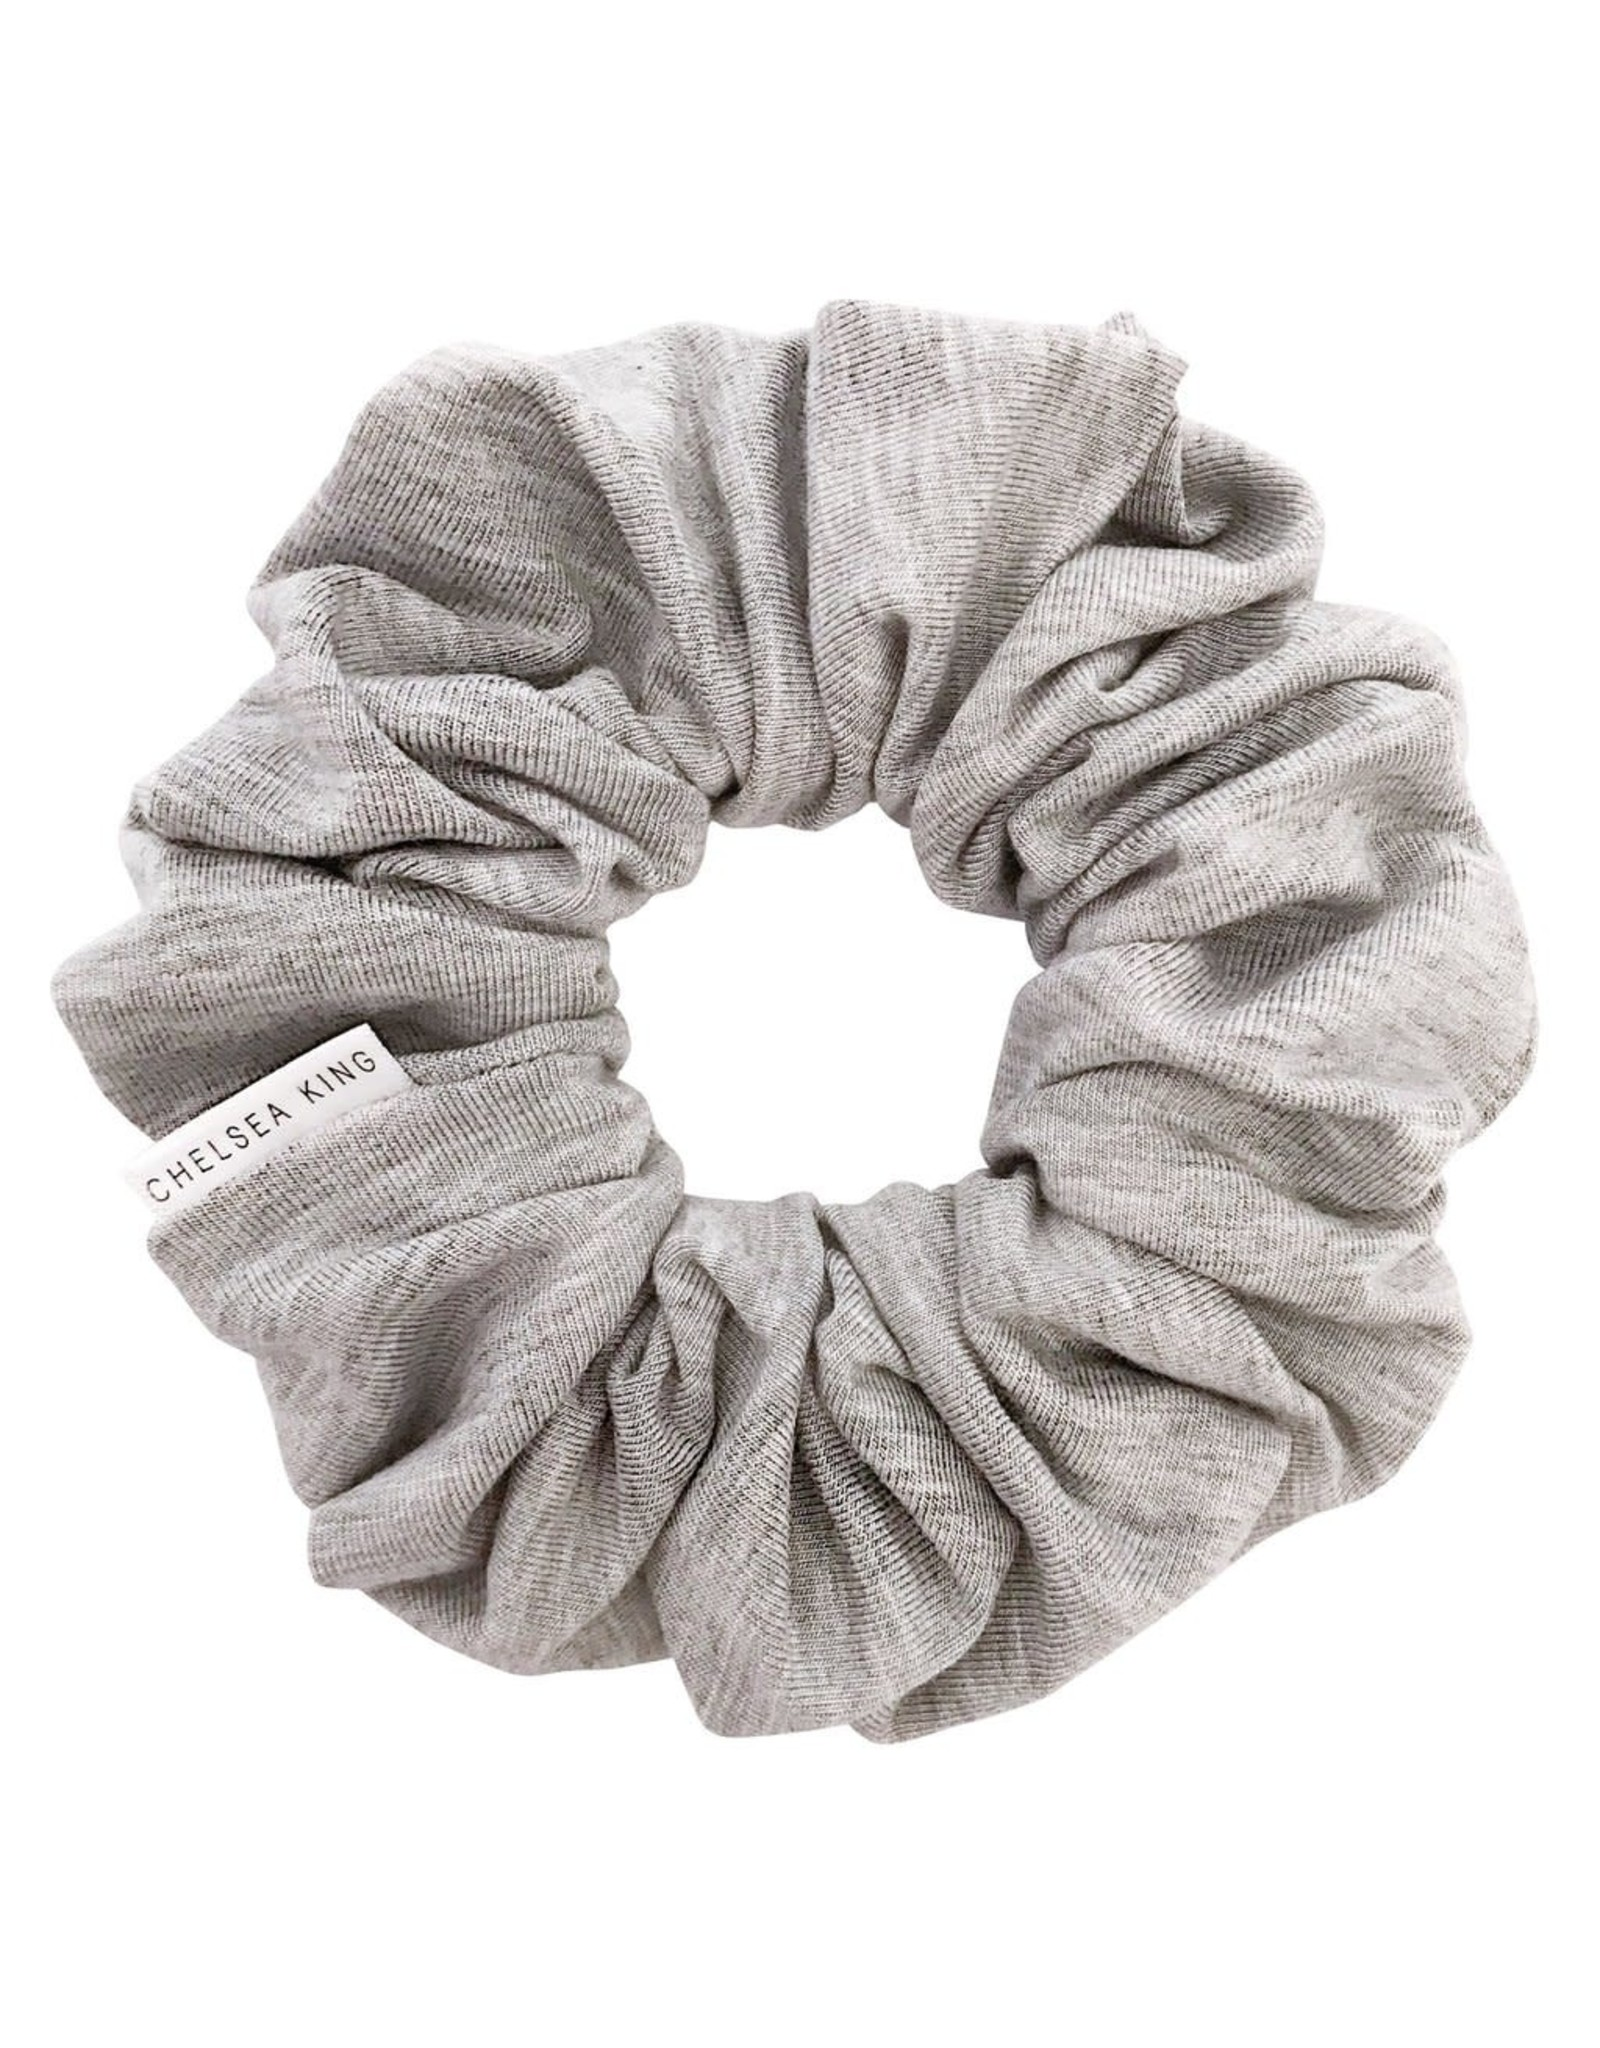 Chelsea King Organic Modal Heather Grey Scrunchie